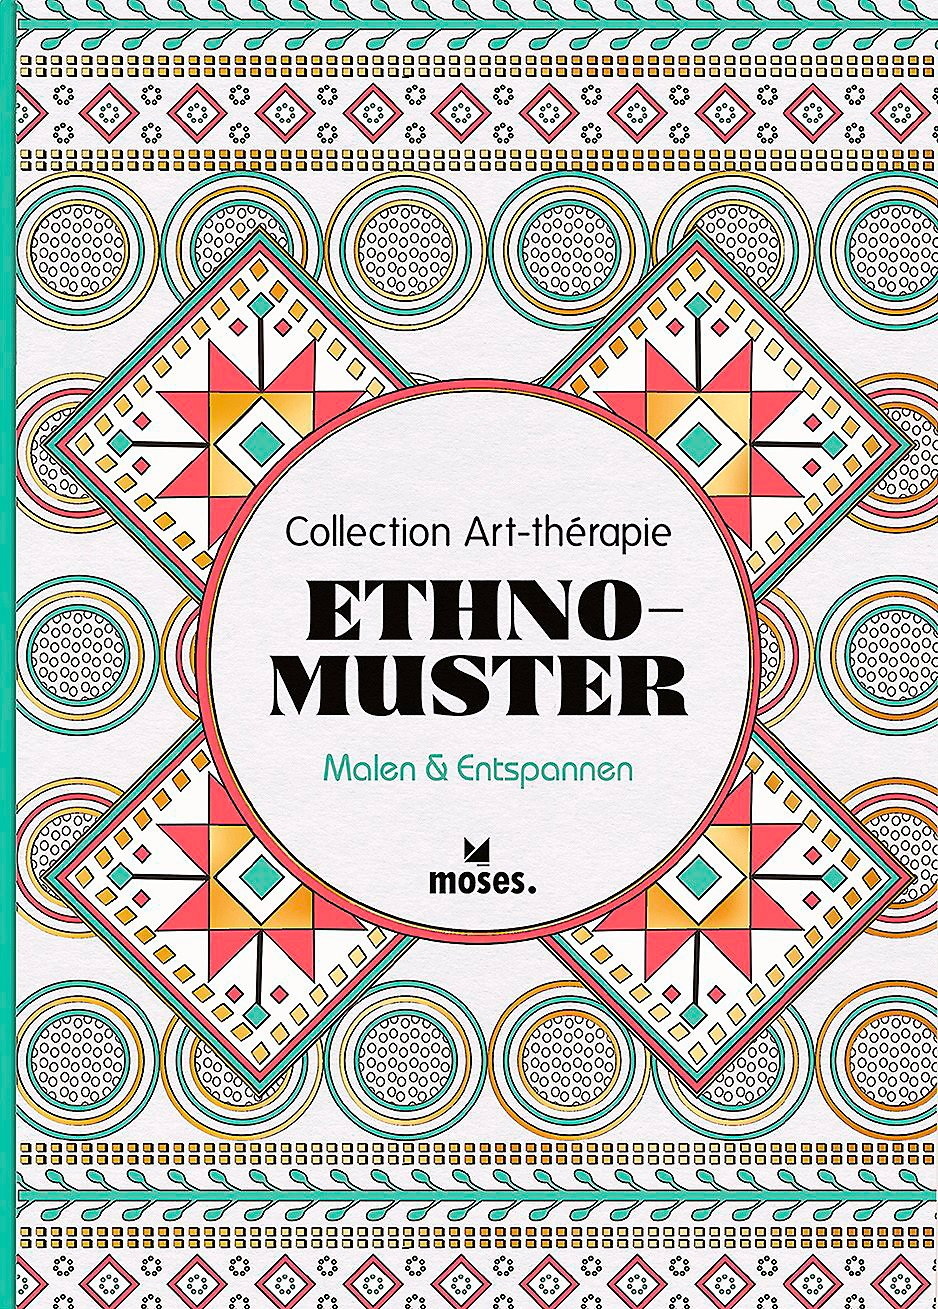 Ethno Muster collection art-thérapie: ethno-muster buch - weltbild.ch